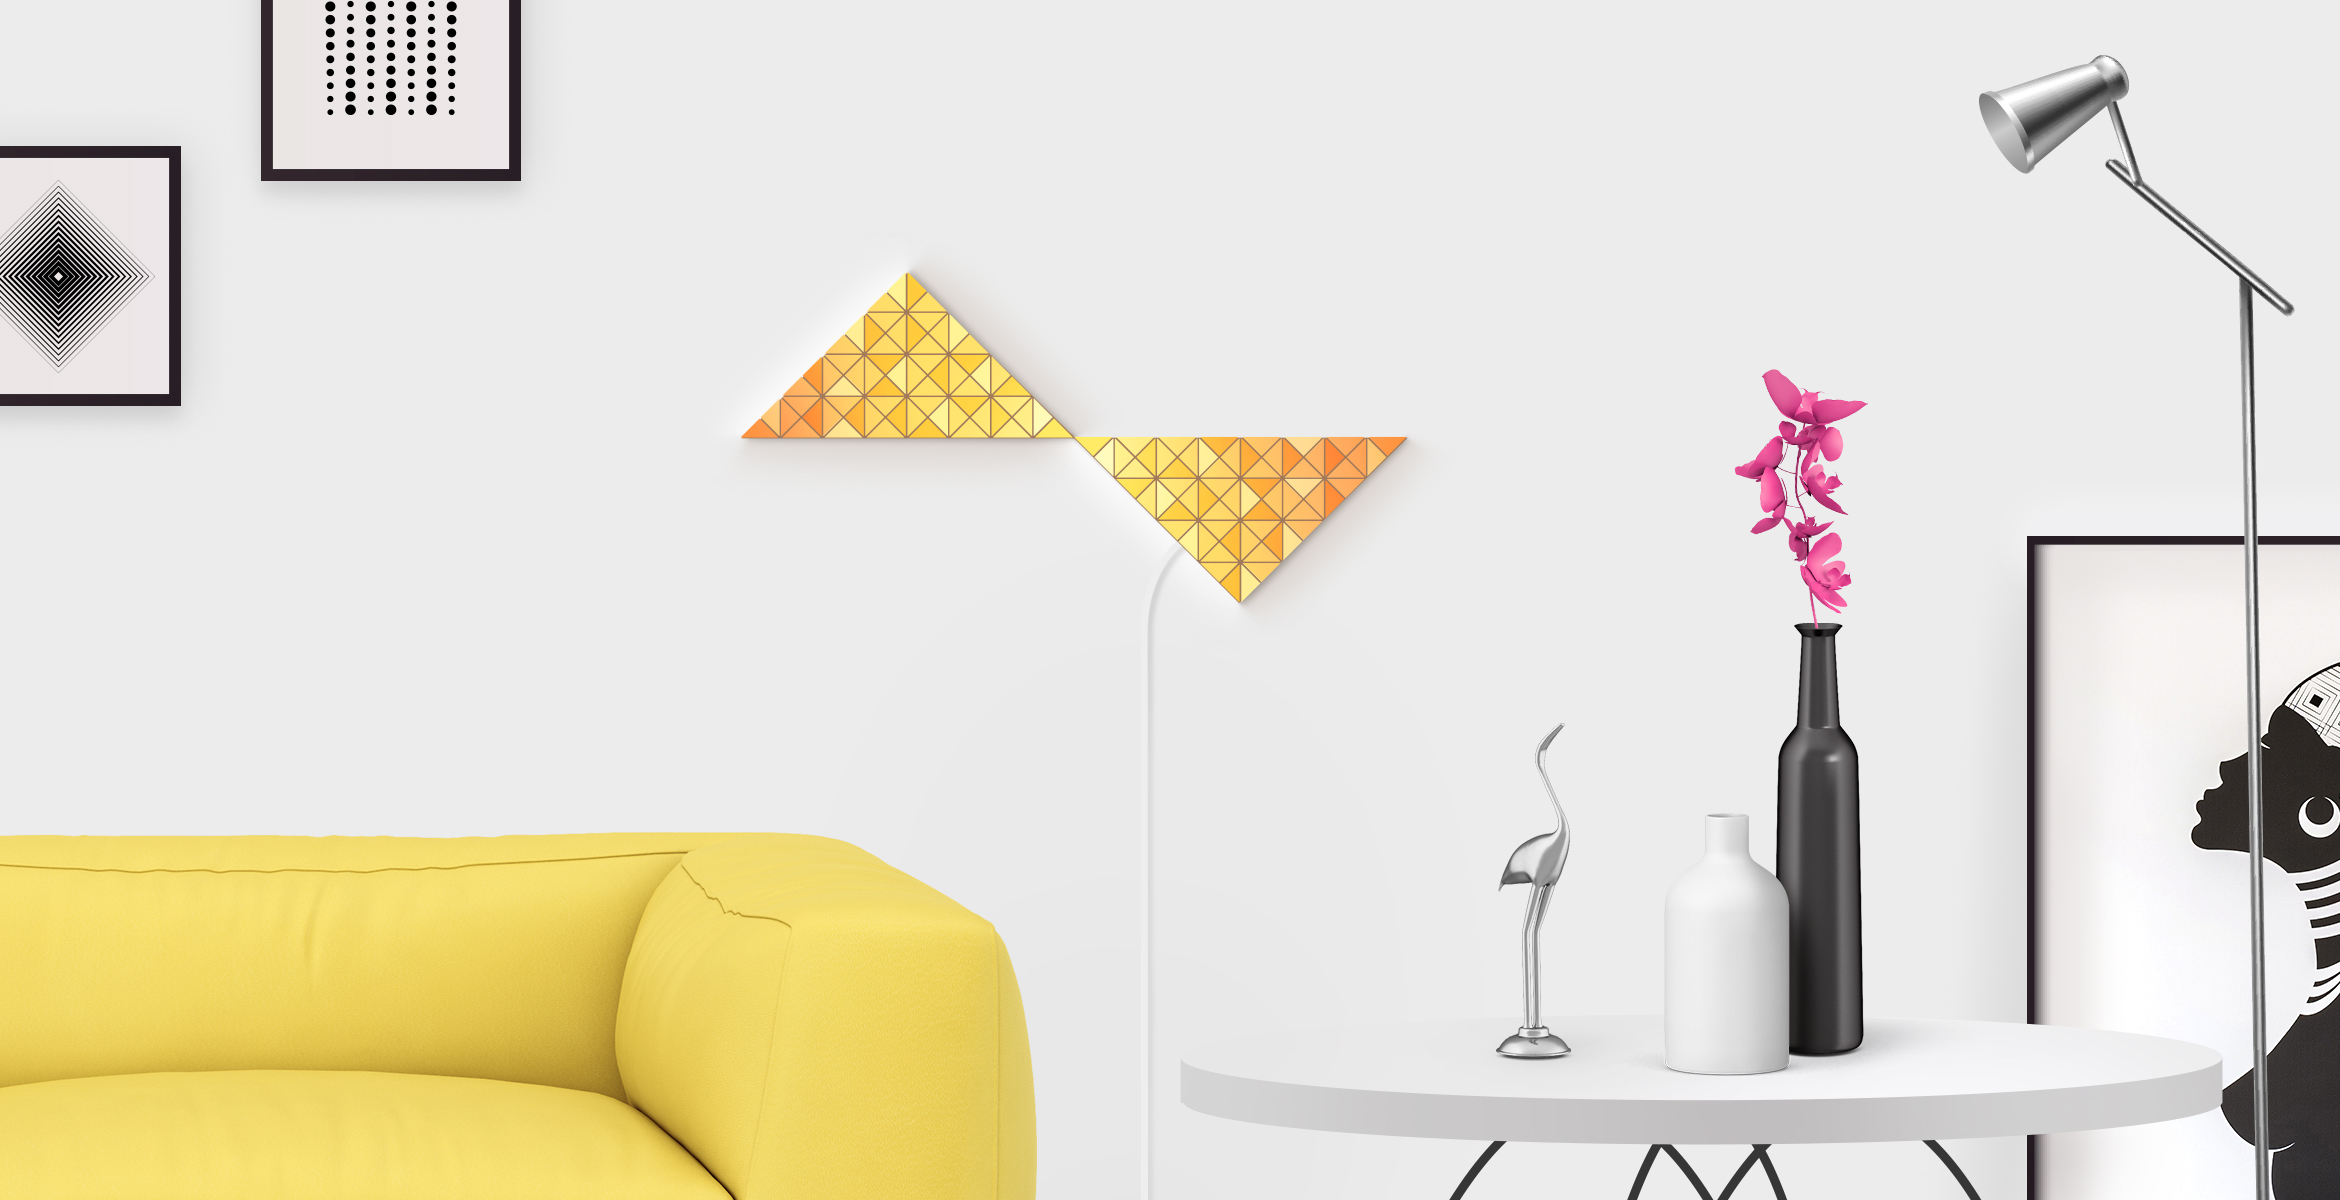 Inversion shape in yellow color, assembled from 2 LaMetric SKY smart light surfaces, placed in a stylish living room